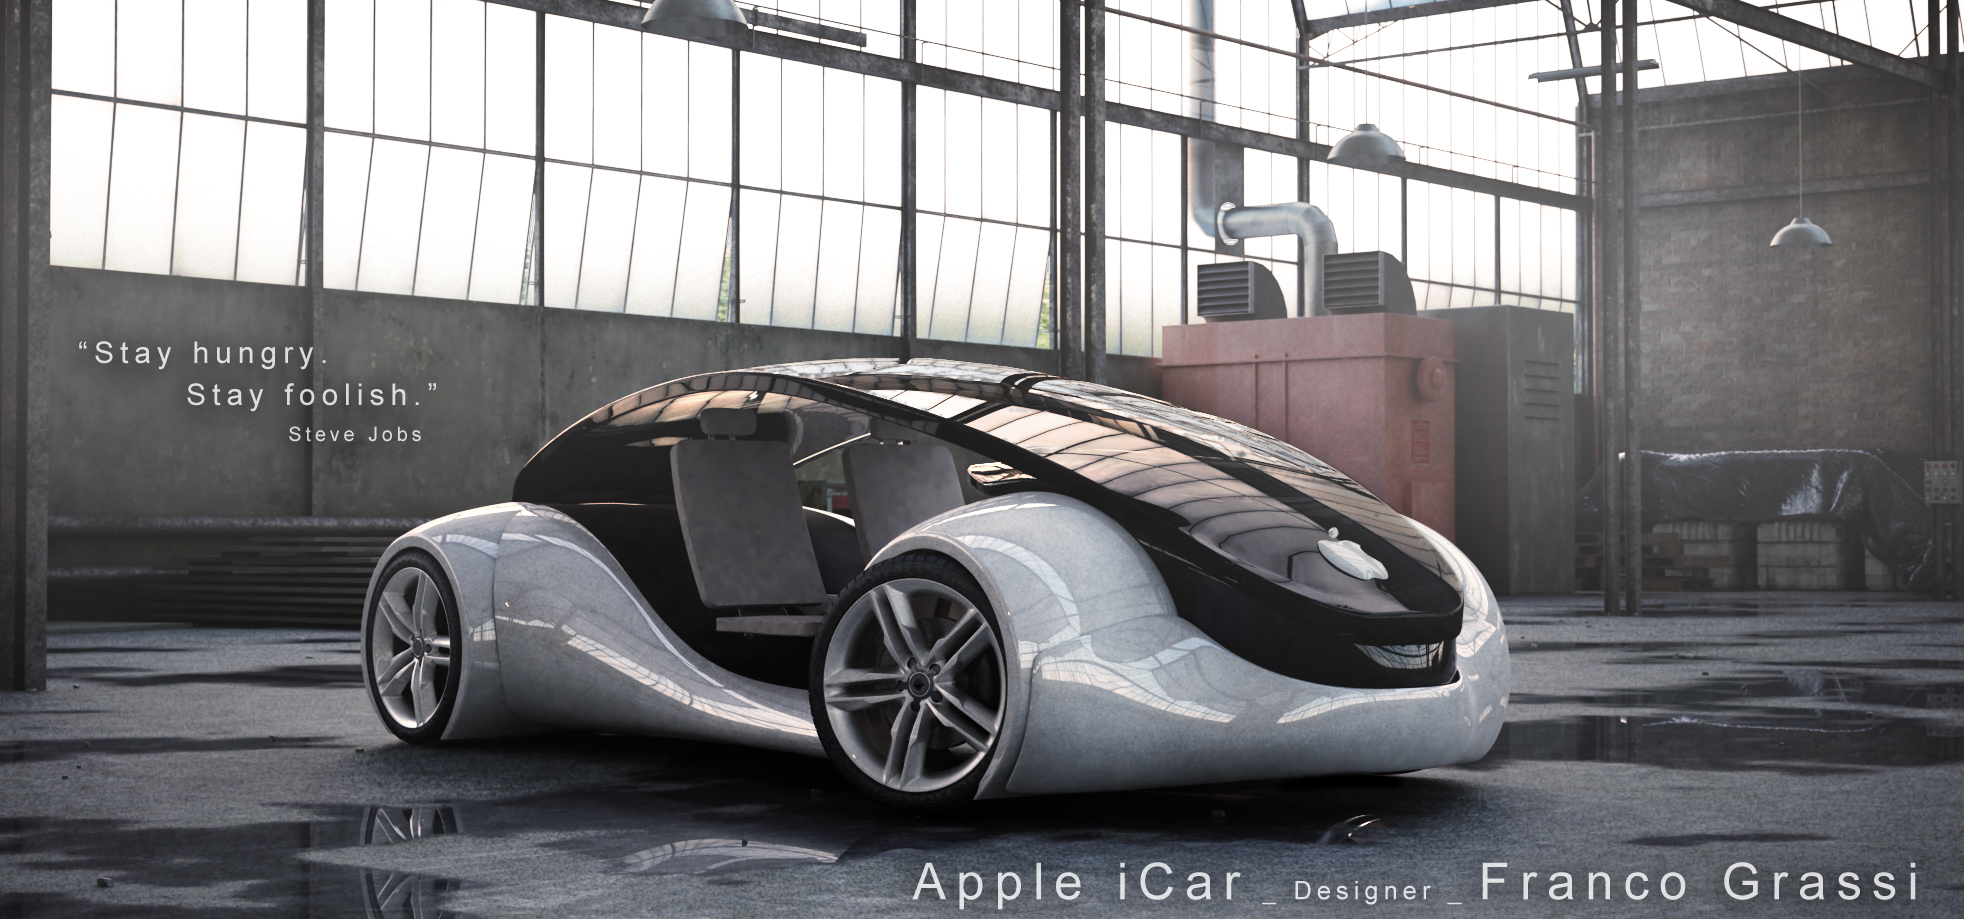 Would You Buy an Overpriced Car Made by Apple? - autoevolution